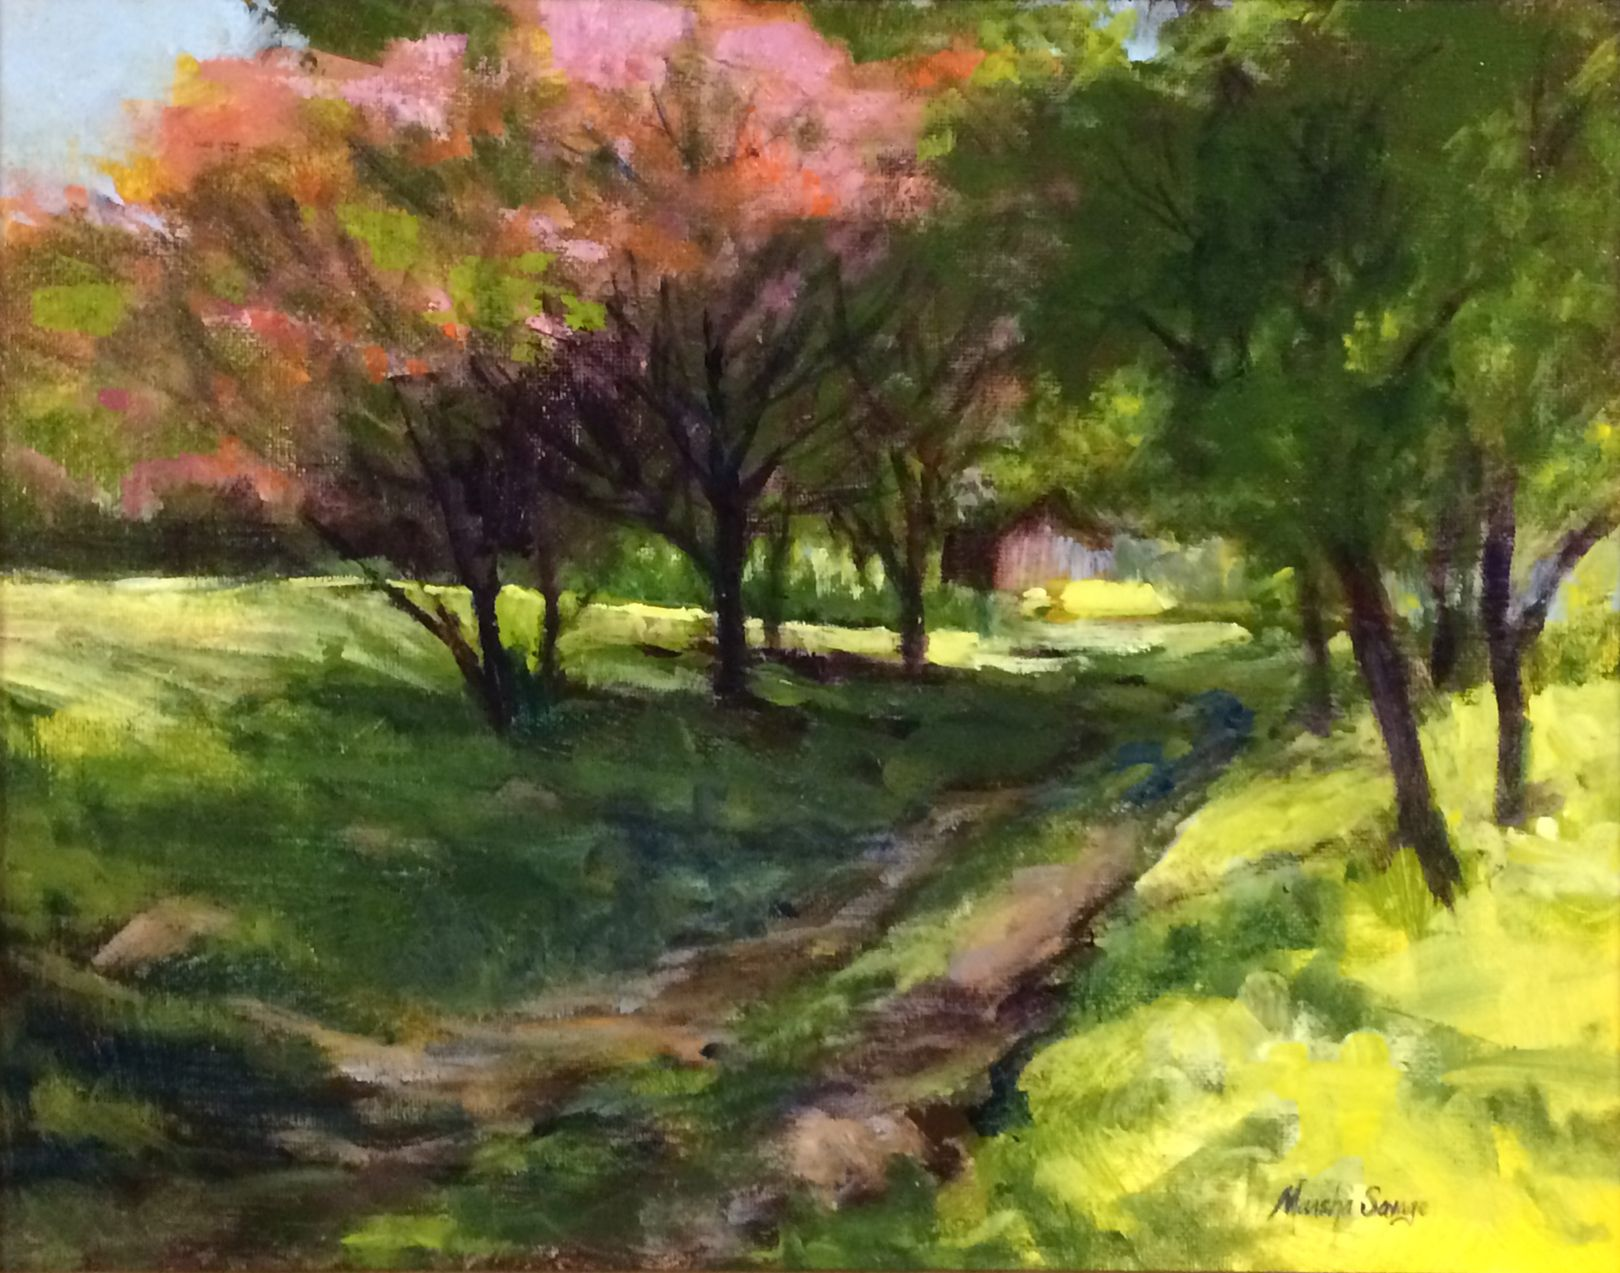 """Dogwood Path"" is an 11""x14"" acrylic painting done from a"